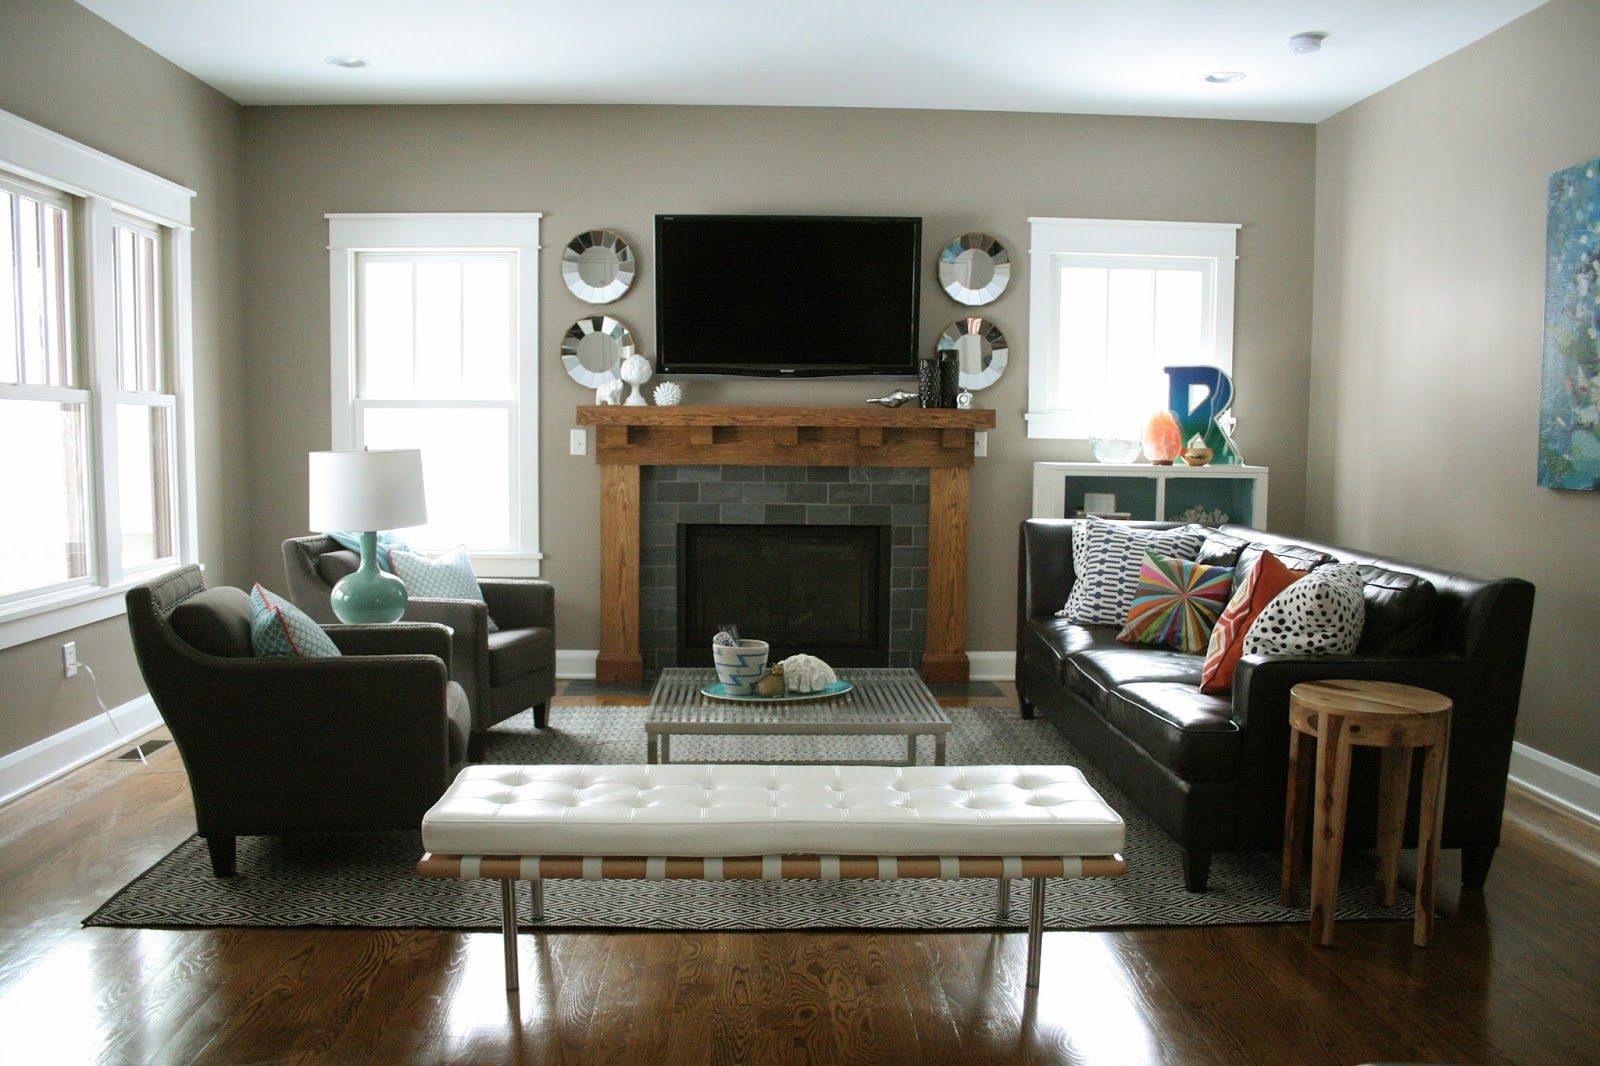 Small living room layout ideas with fireplace best for Square living room furniture layout